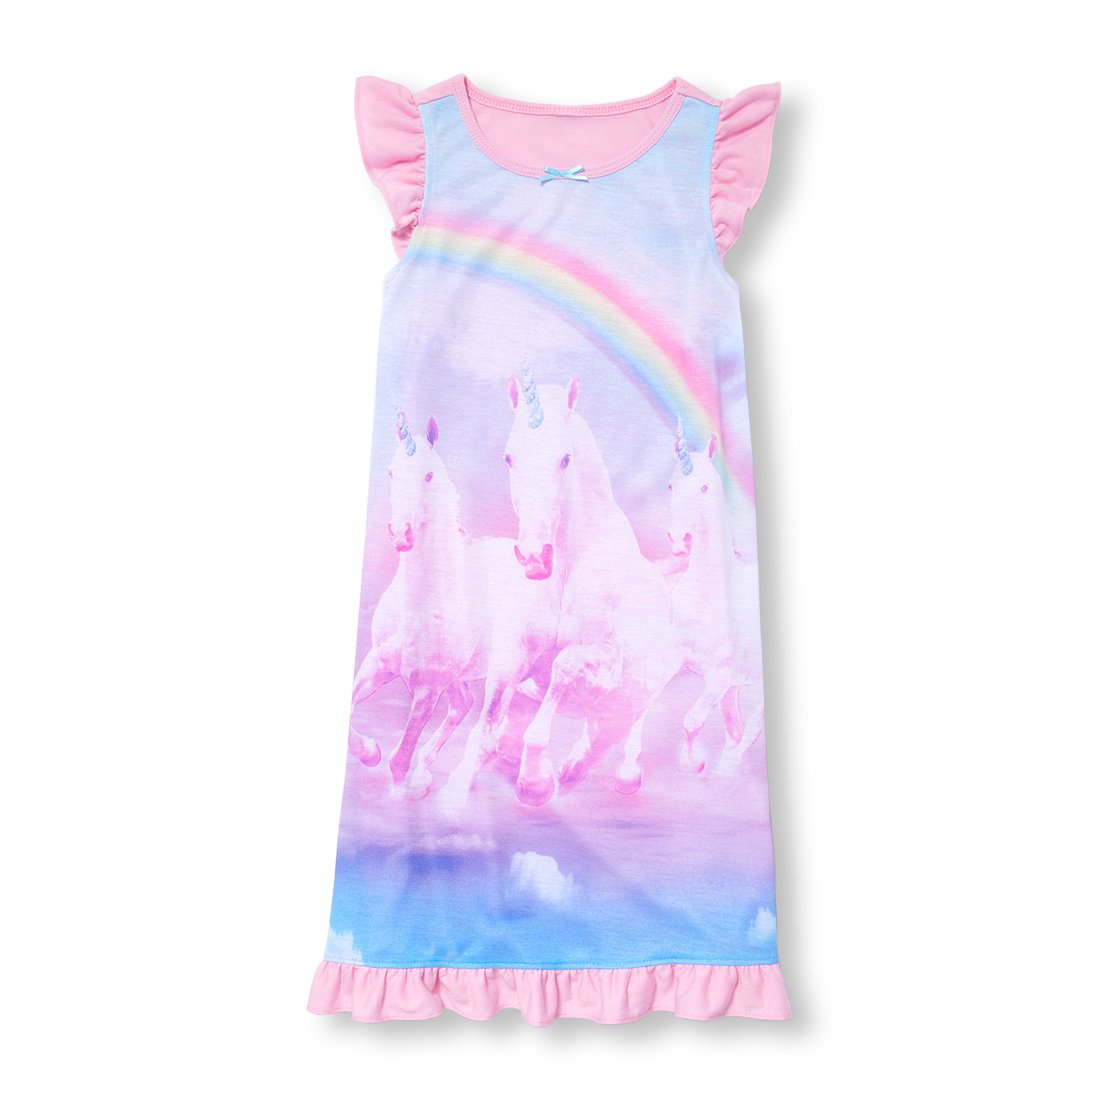 The Children's Place Big Girls' Night Gown, Multi-Colored 96483, L (10/12)